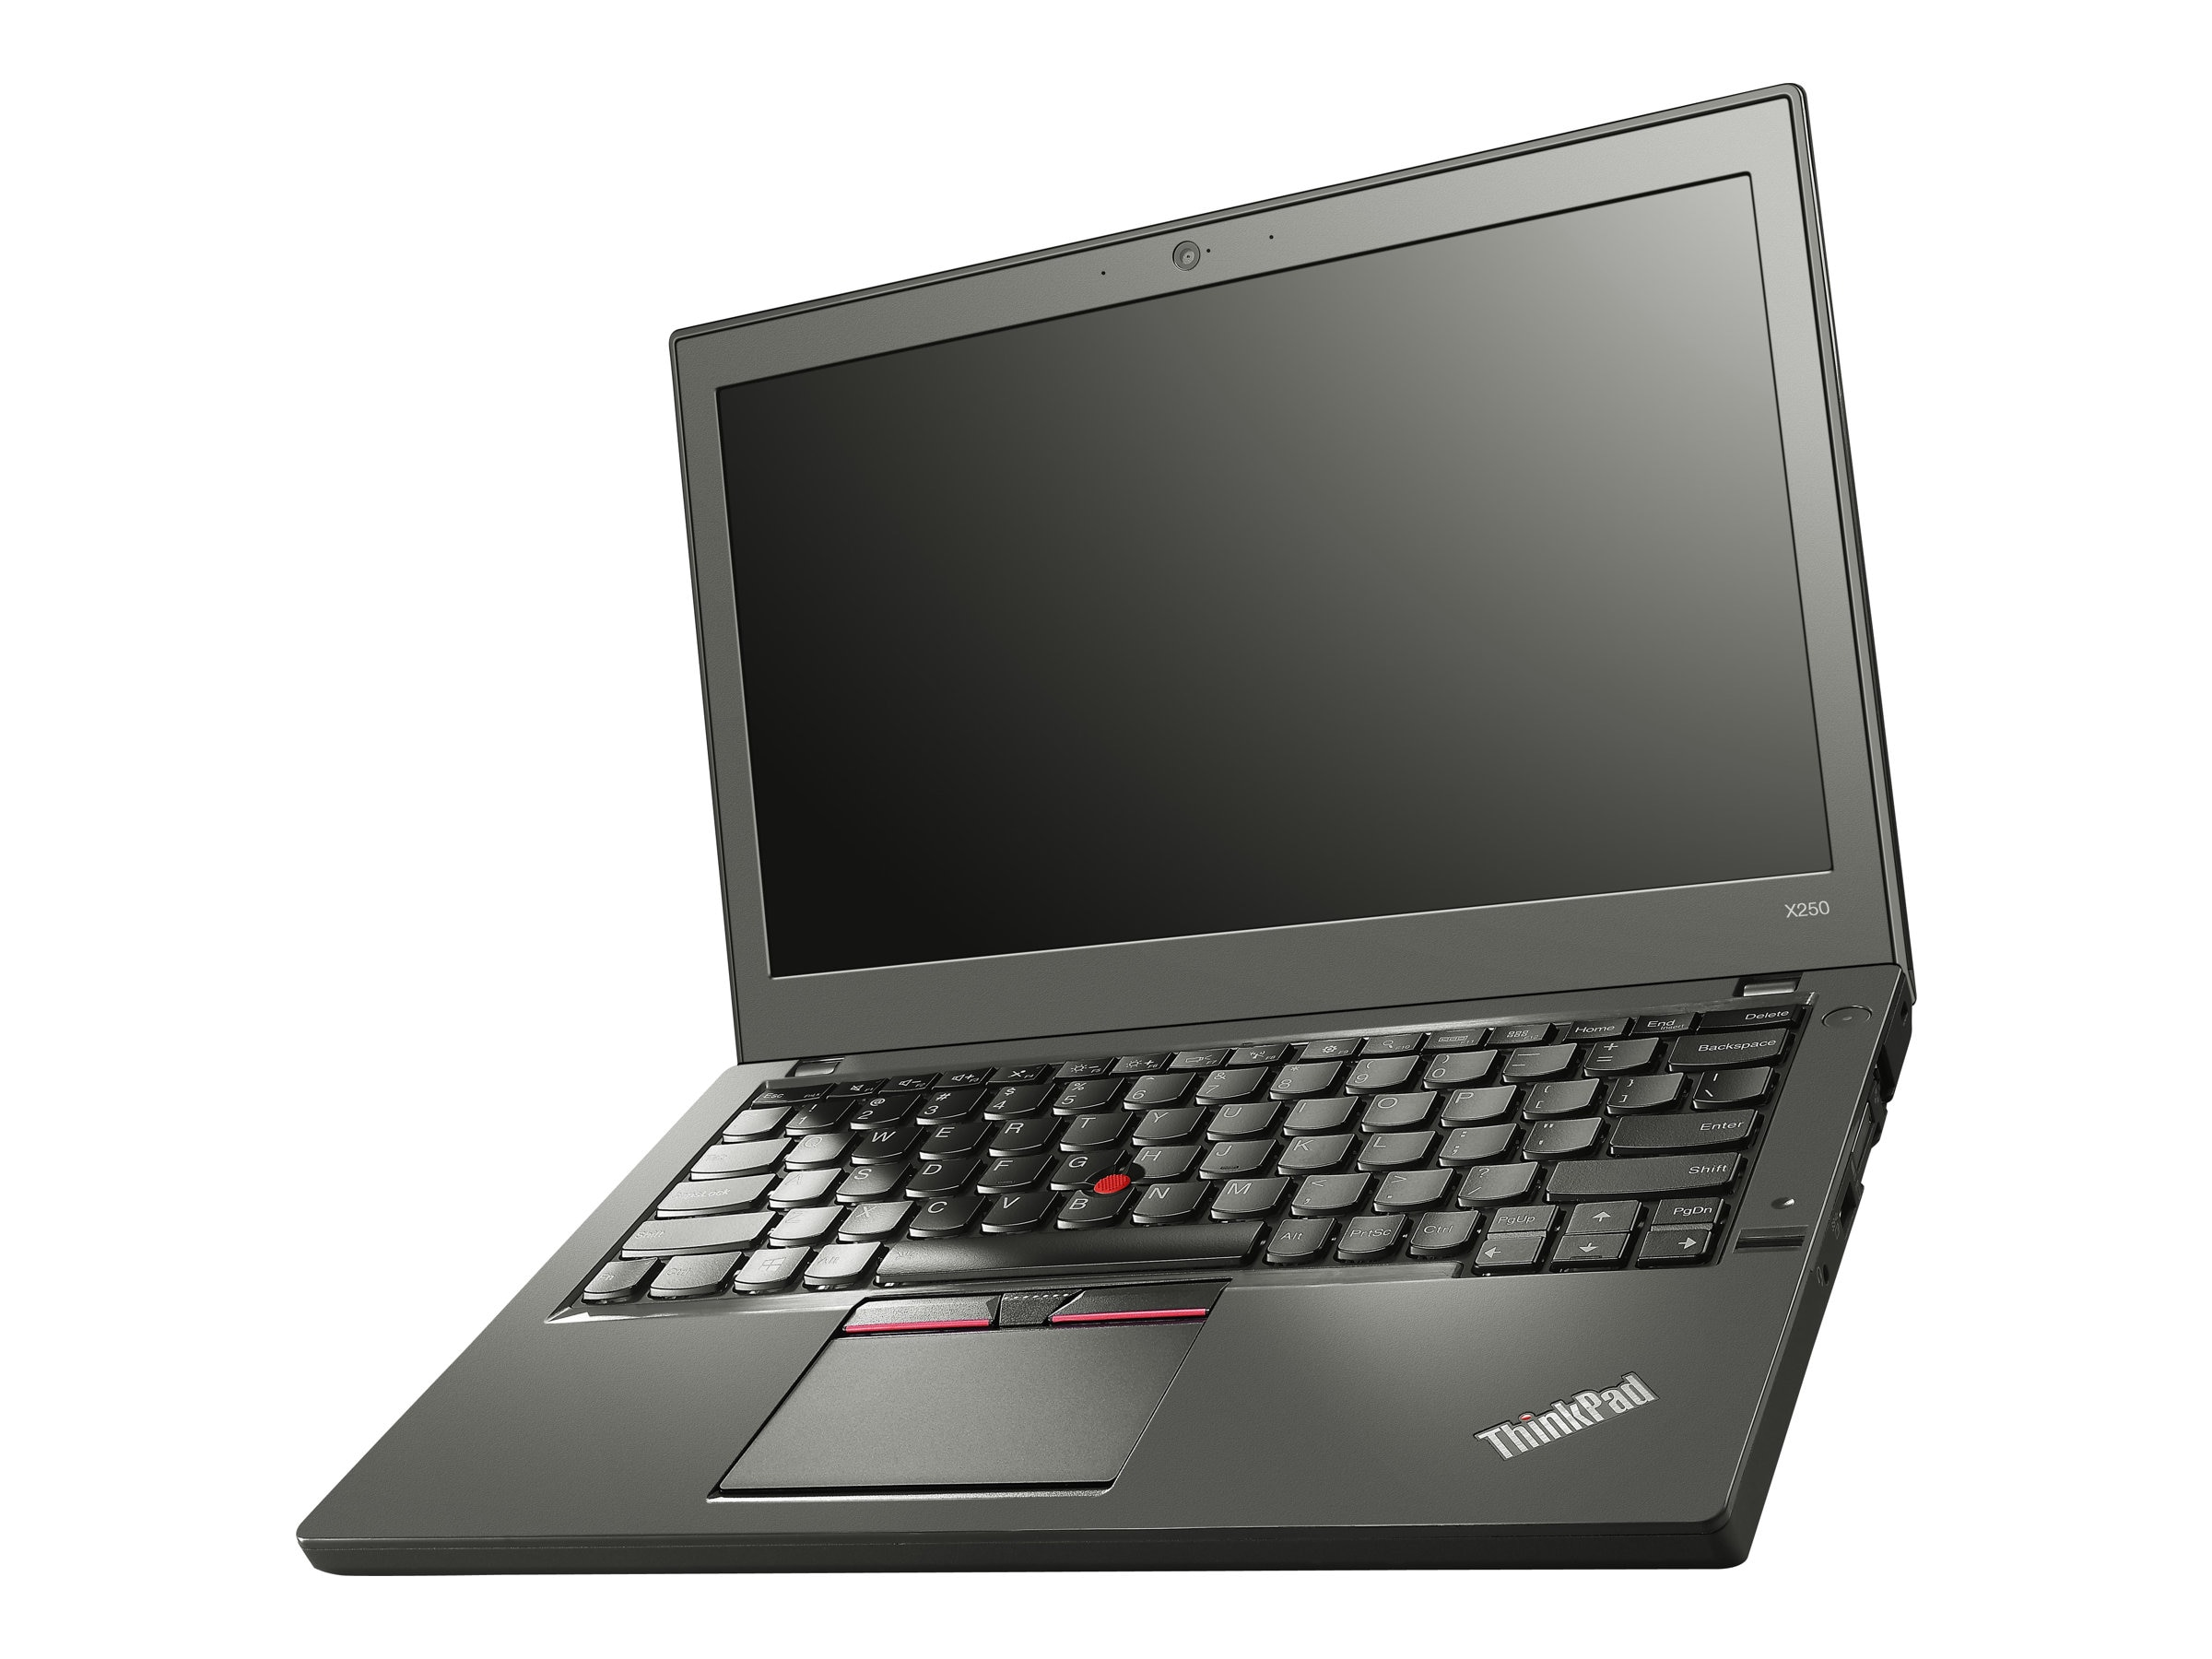 Lenovo TopSeller ThinkPad X250 2.3GHz Core i5 12.5in display